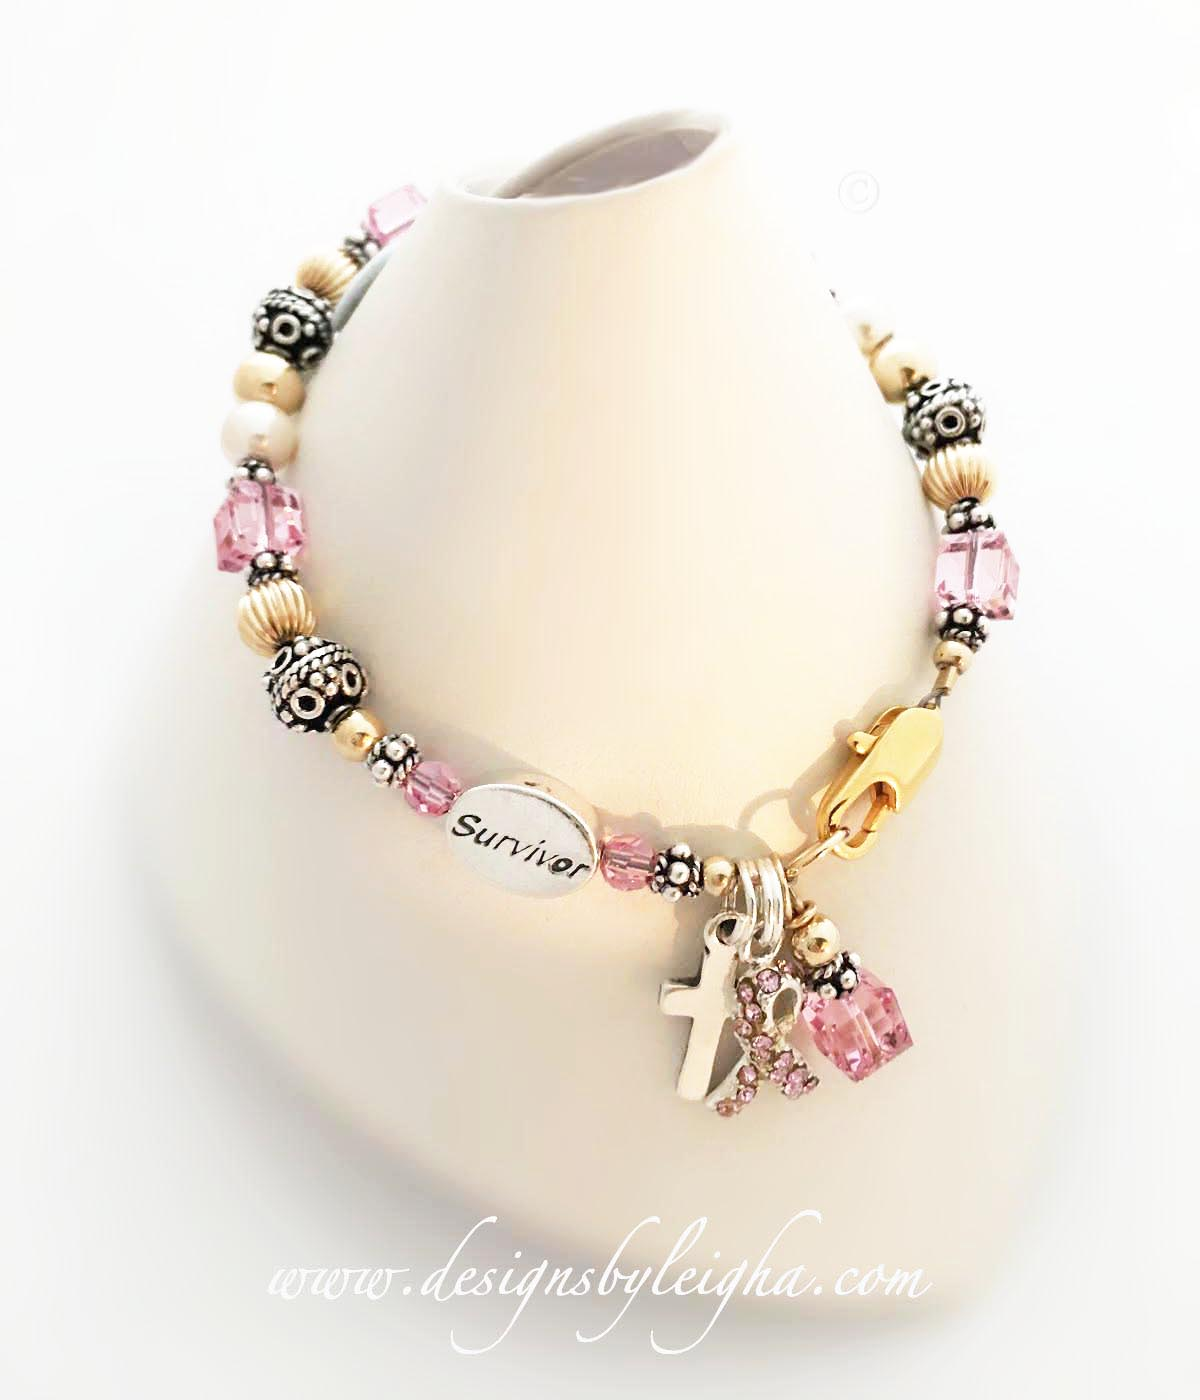 Breast Cancer Survivor Bracelet with a Survivor Bead, Ribbon Charm and Pink Crystals - DBL-MB-26